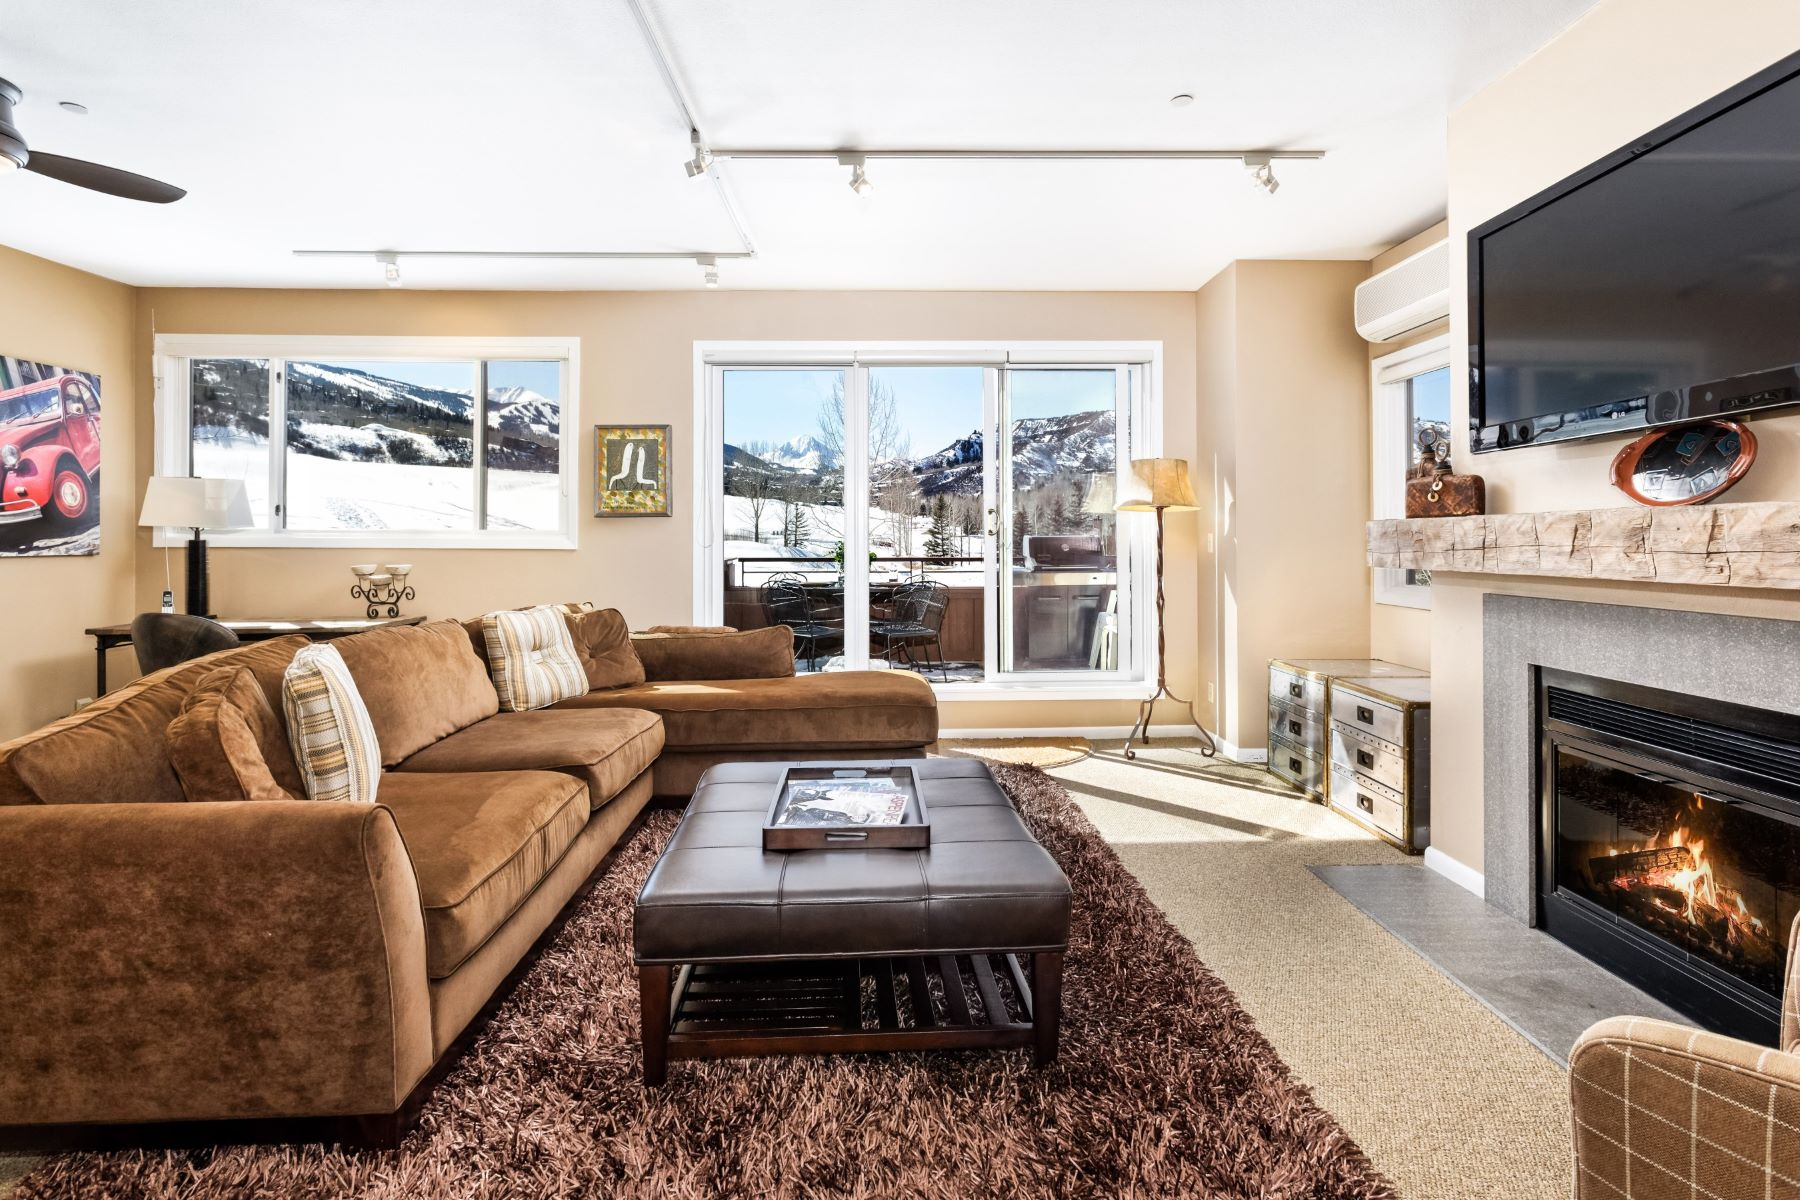 Condominium for Sale at Country Club Villas Unit 1623 150 Snowmass Club Circle Unit 1623 Snowmass Village, Colorado, 81615 United States